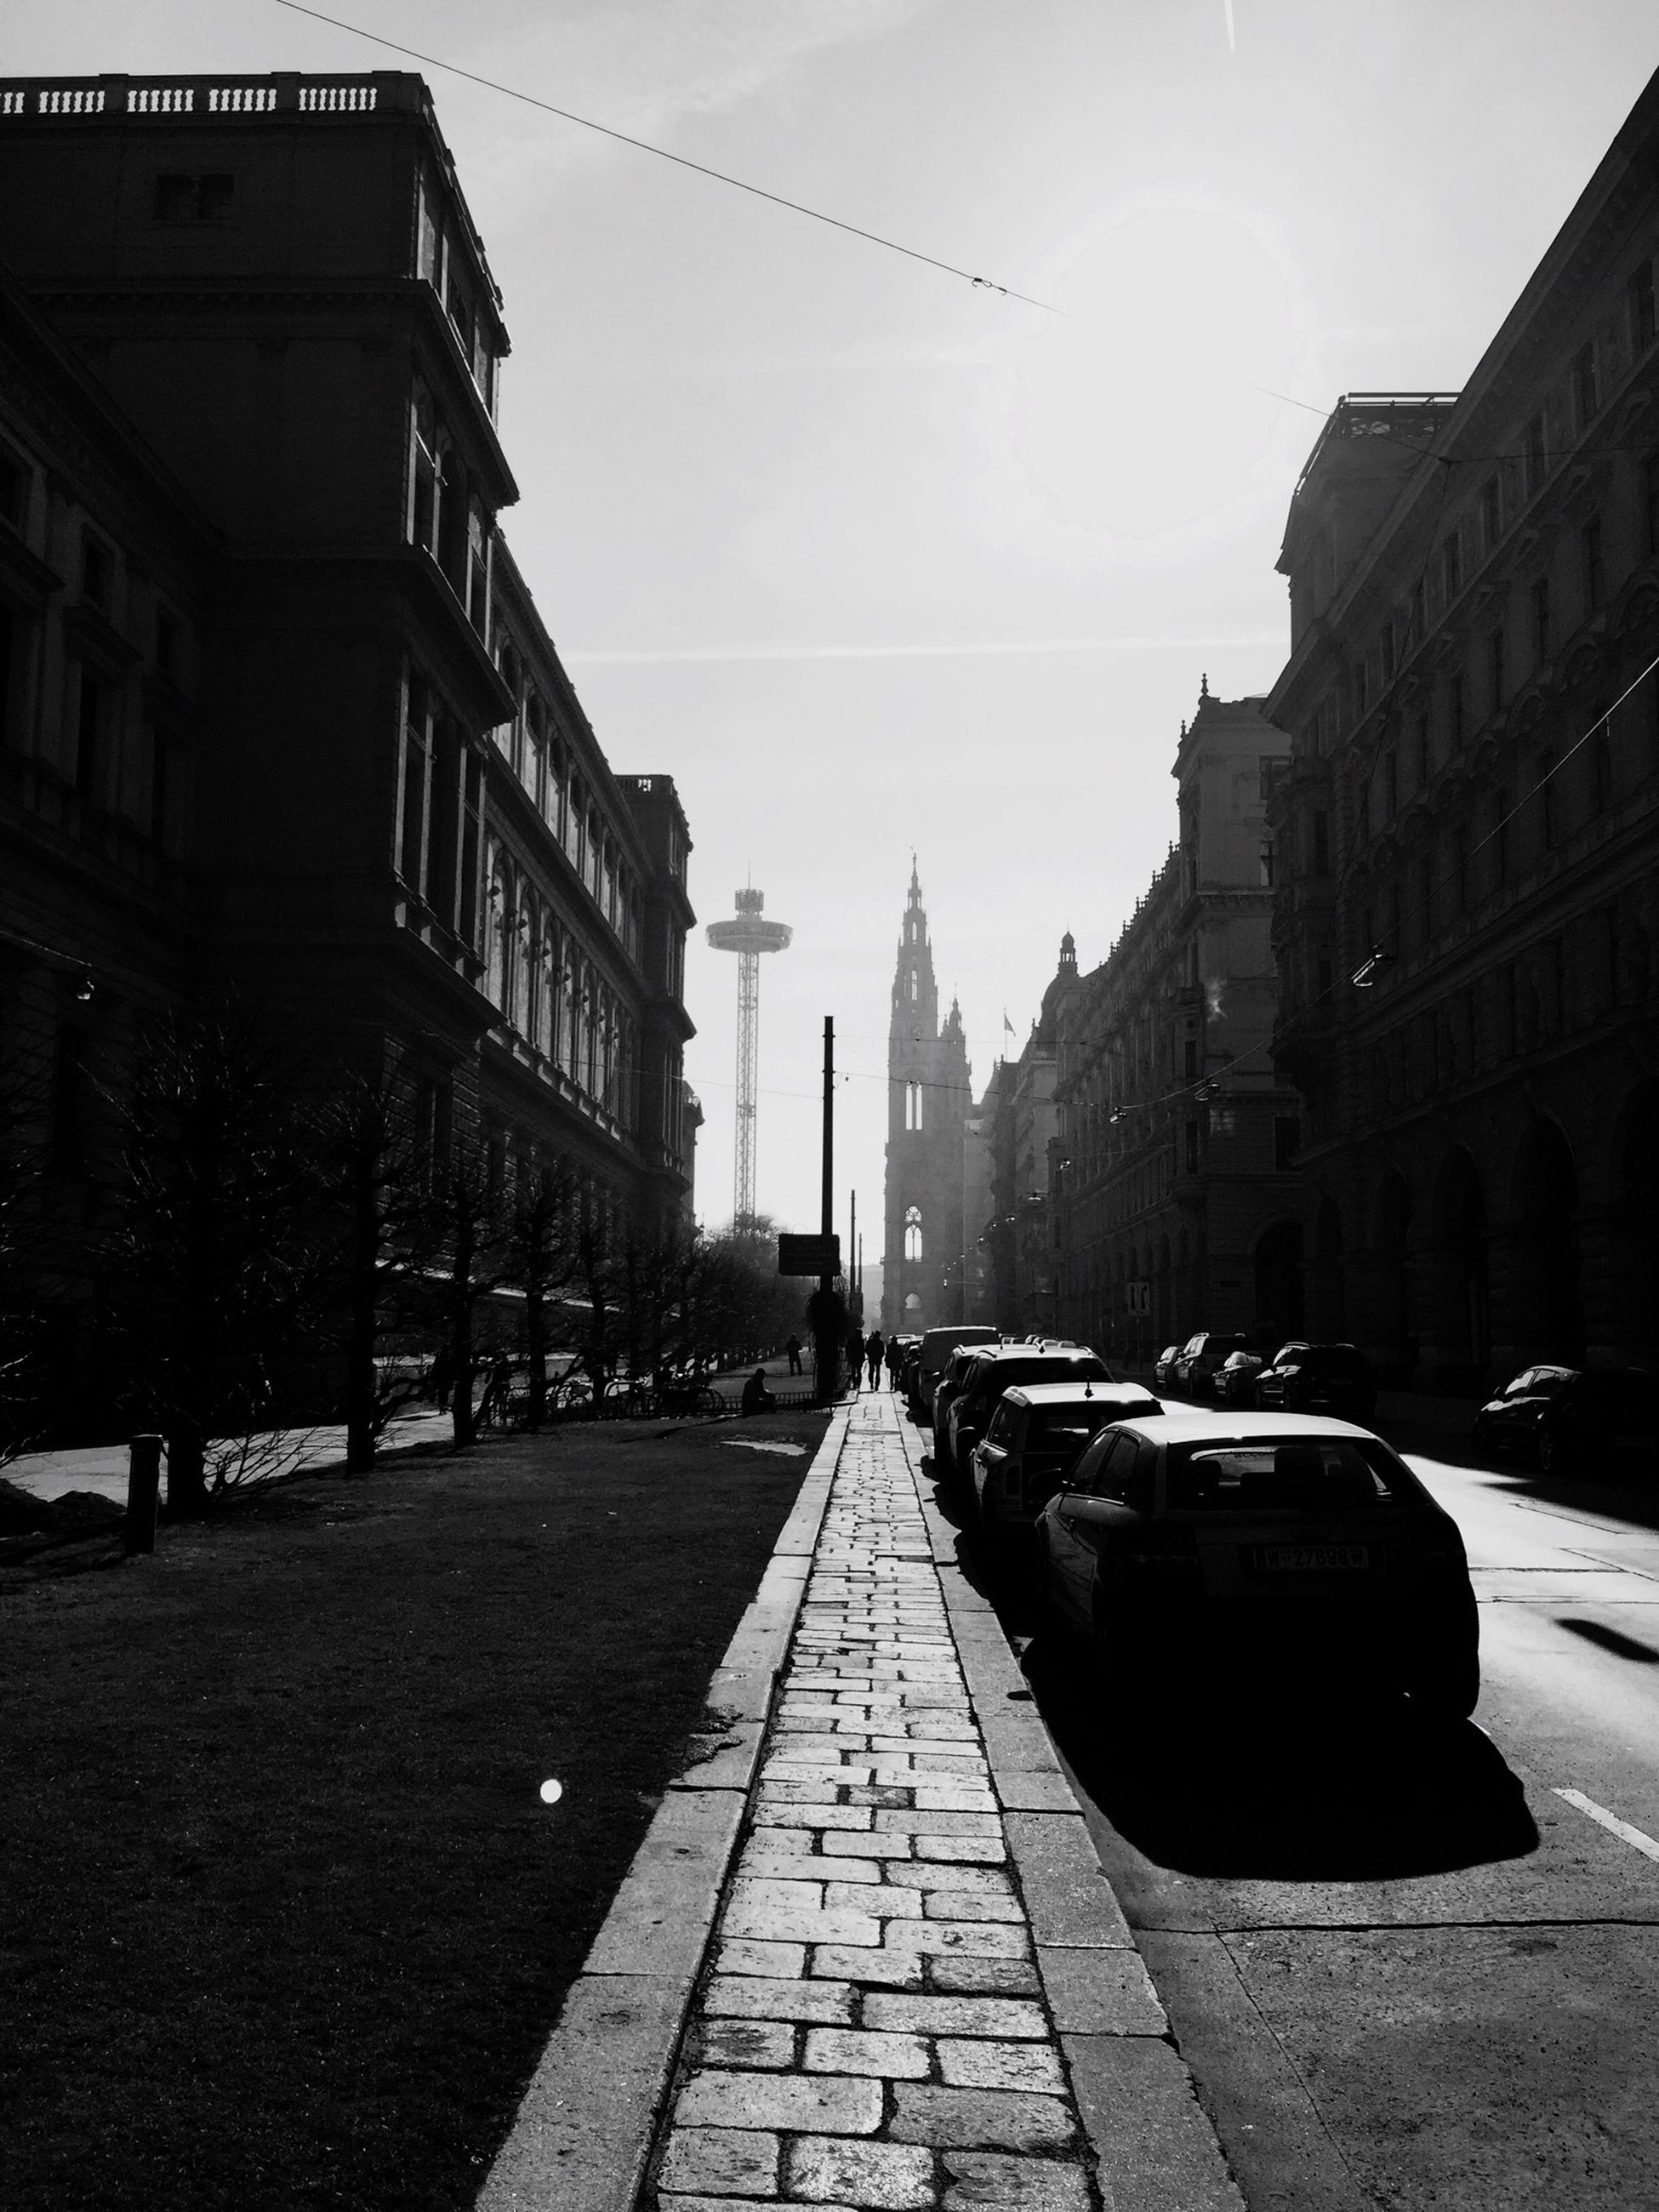 building exterior, architecture, built structure, city, street, the way forward, transportation, sky, cobblestone, car, diminishing perspective, building, city life, incidental people, city street, road, vanishing point, travel, travel destinations, sunlight